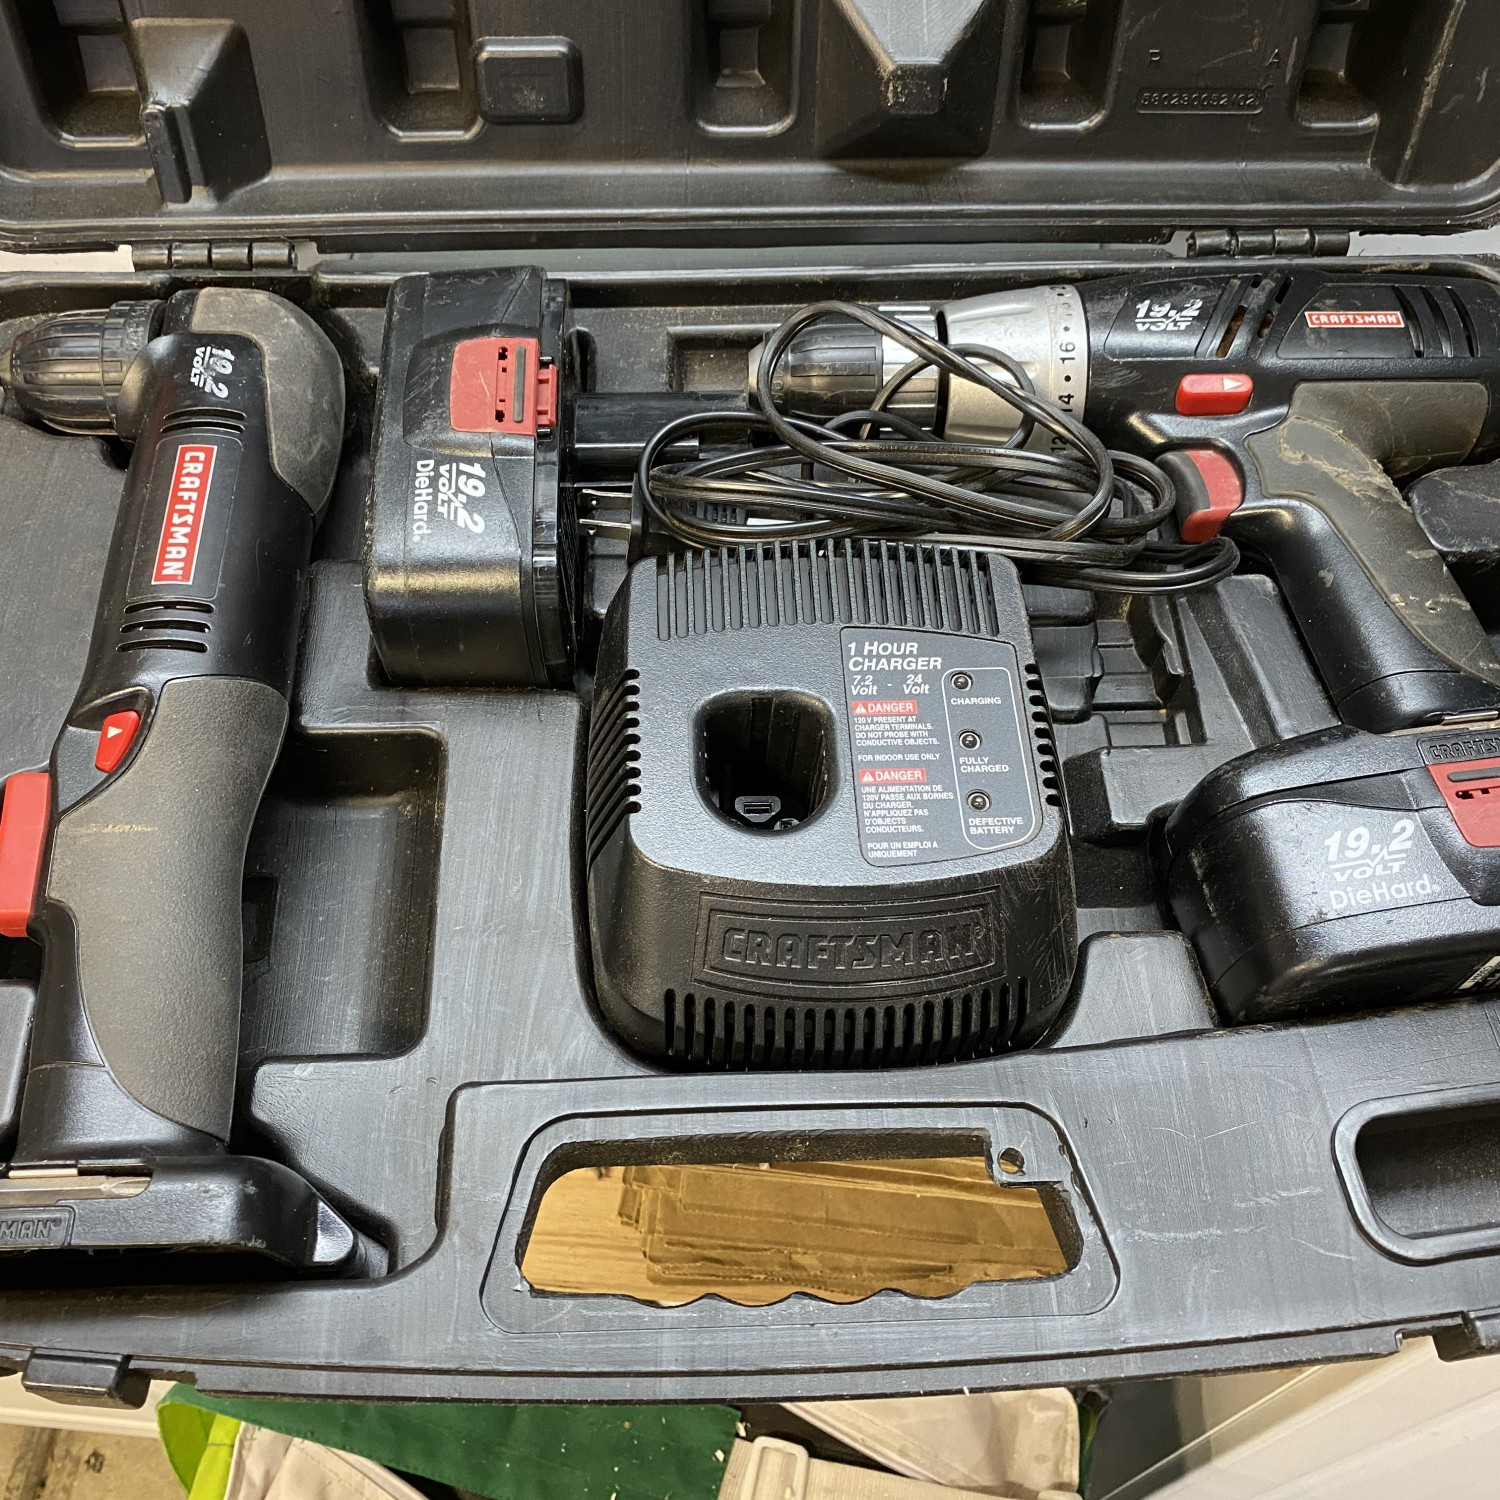 Battery powered drill set of two